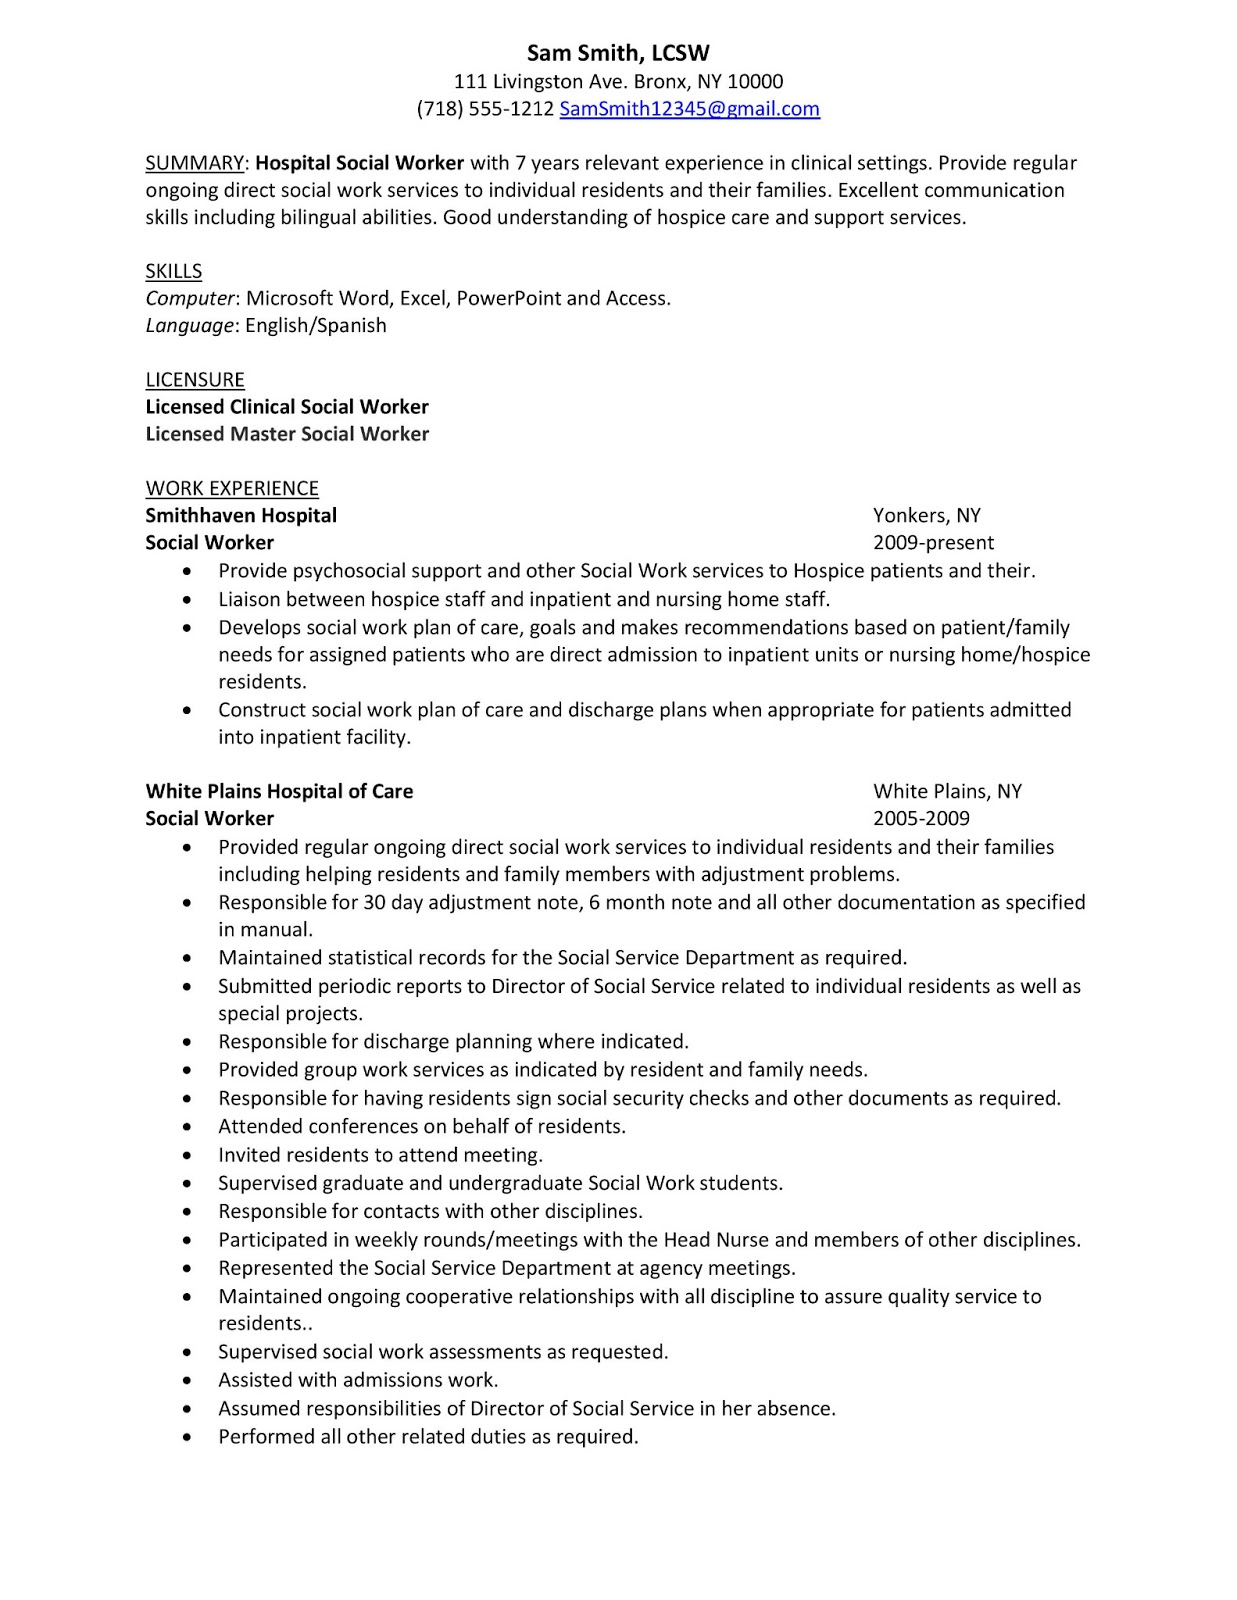 sample resume hospital social worker